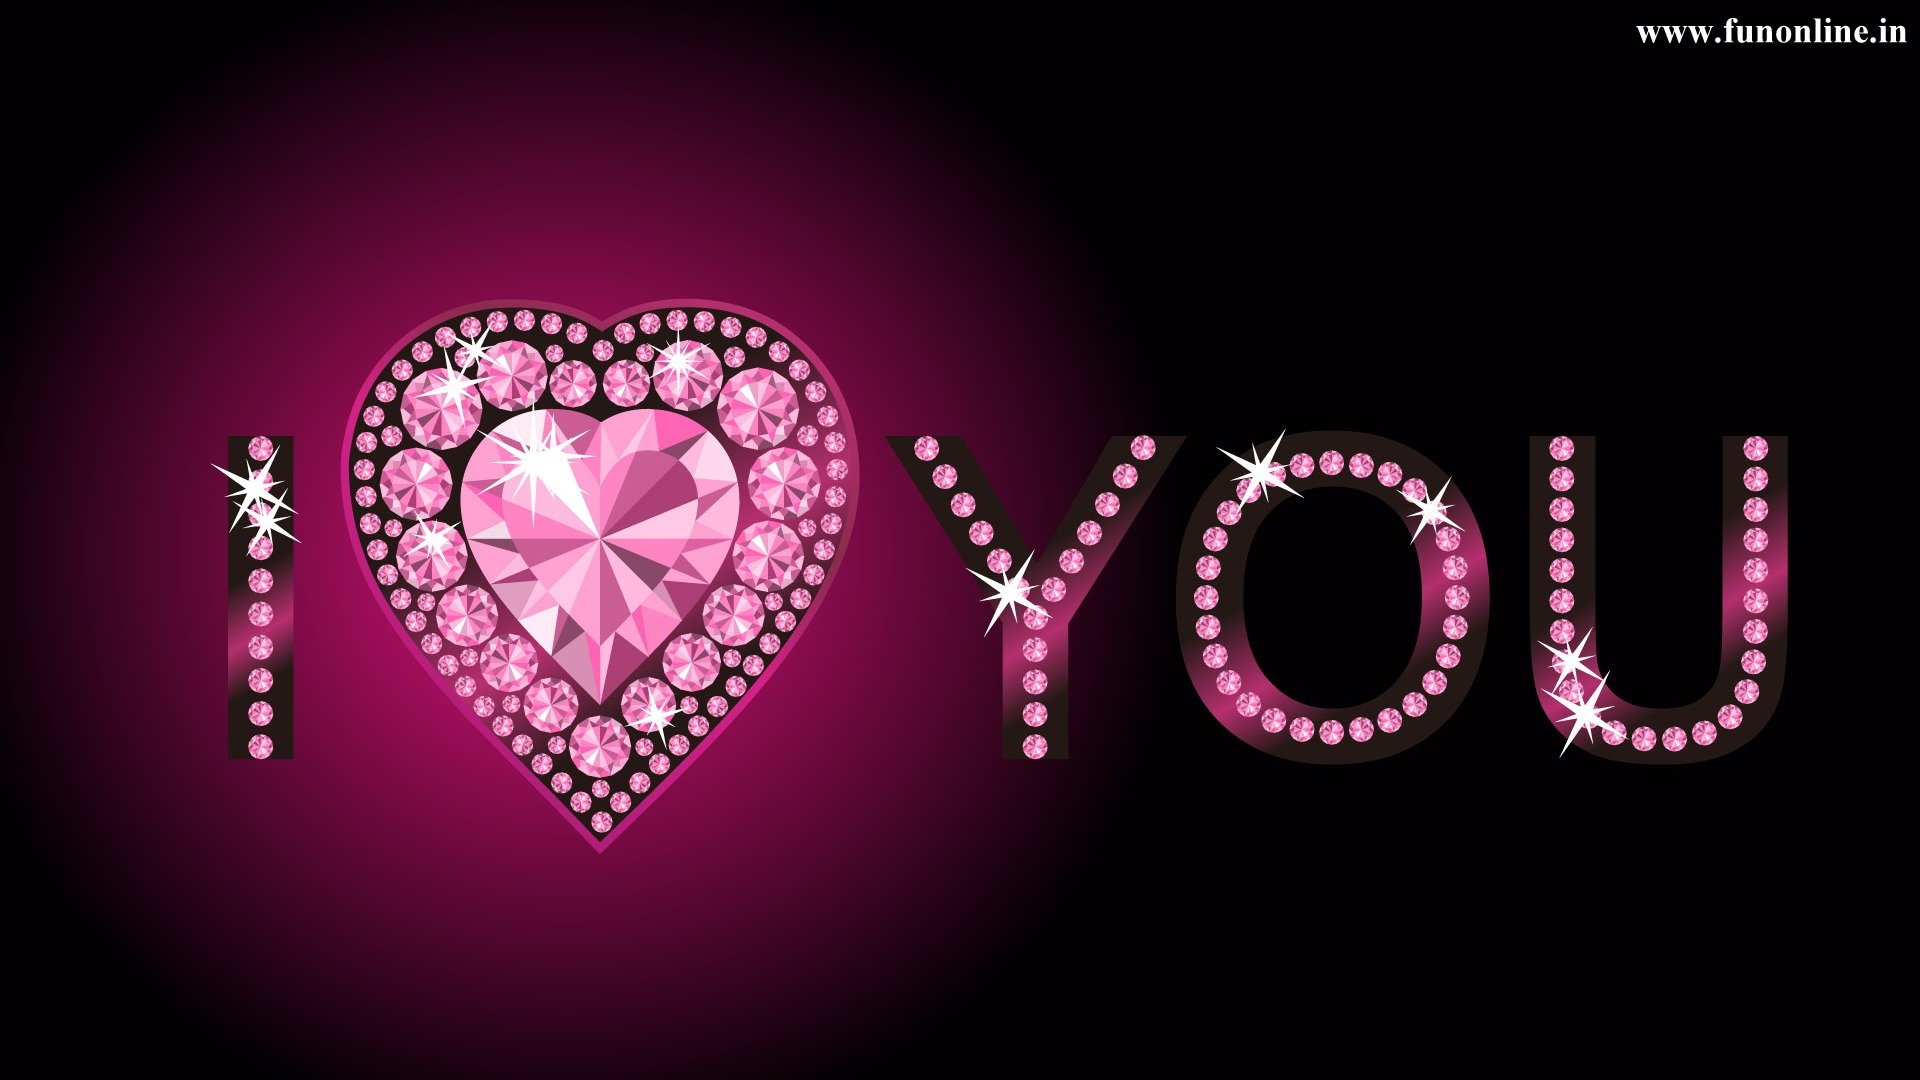 Love Heart Wallpapers Loving Hearts Cute Love Wallpapers Love Poem 1920x1080